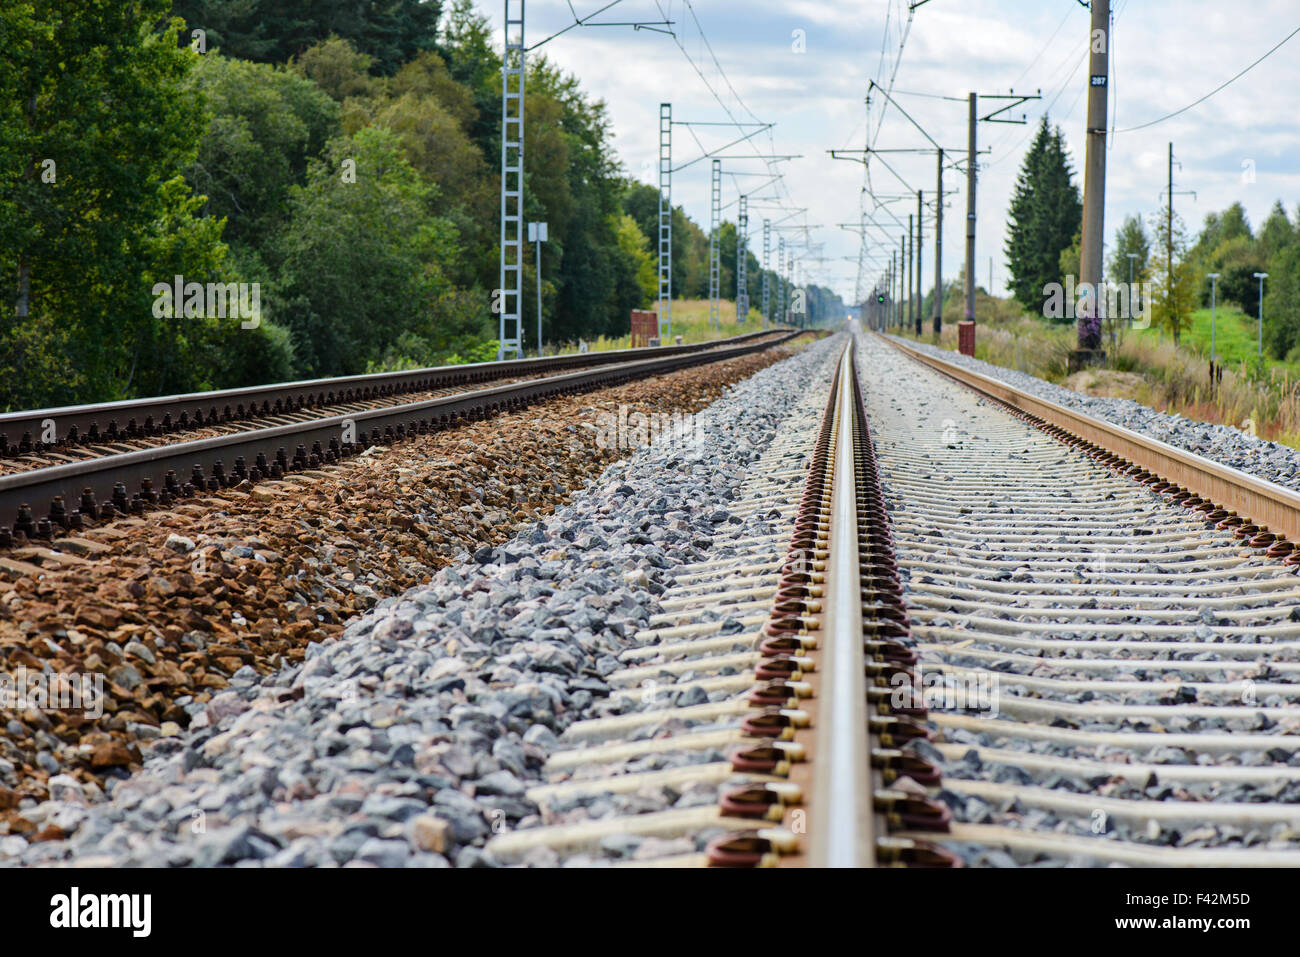 Railroad track vanishing into the distance - Stock Image